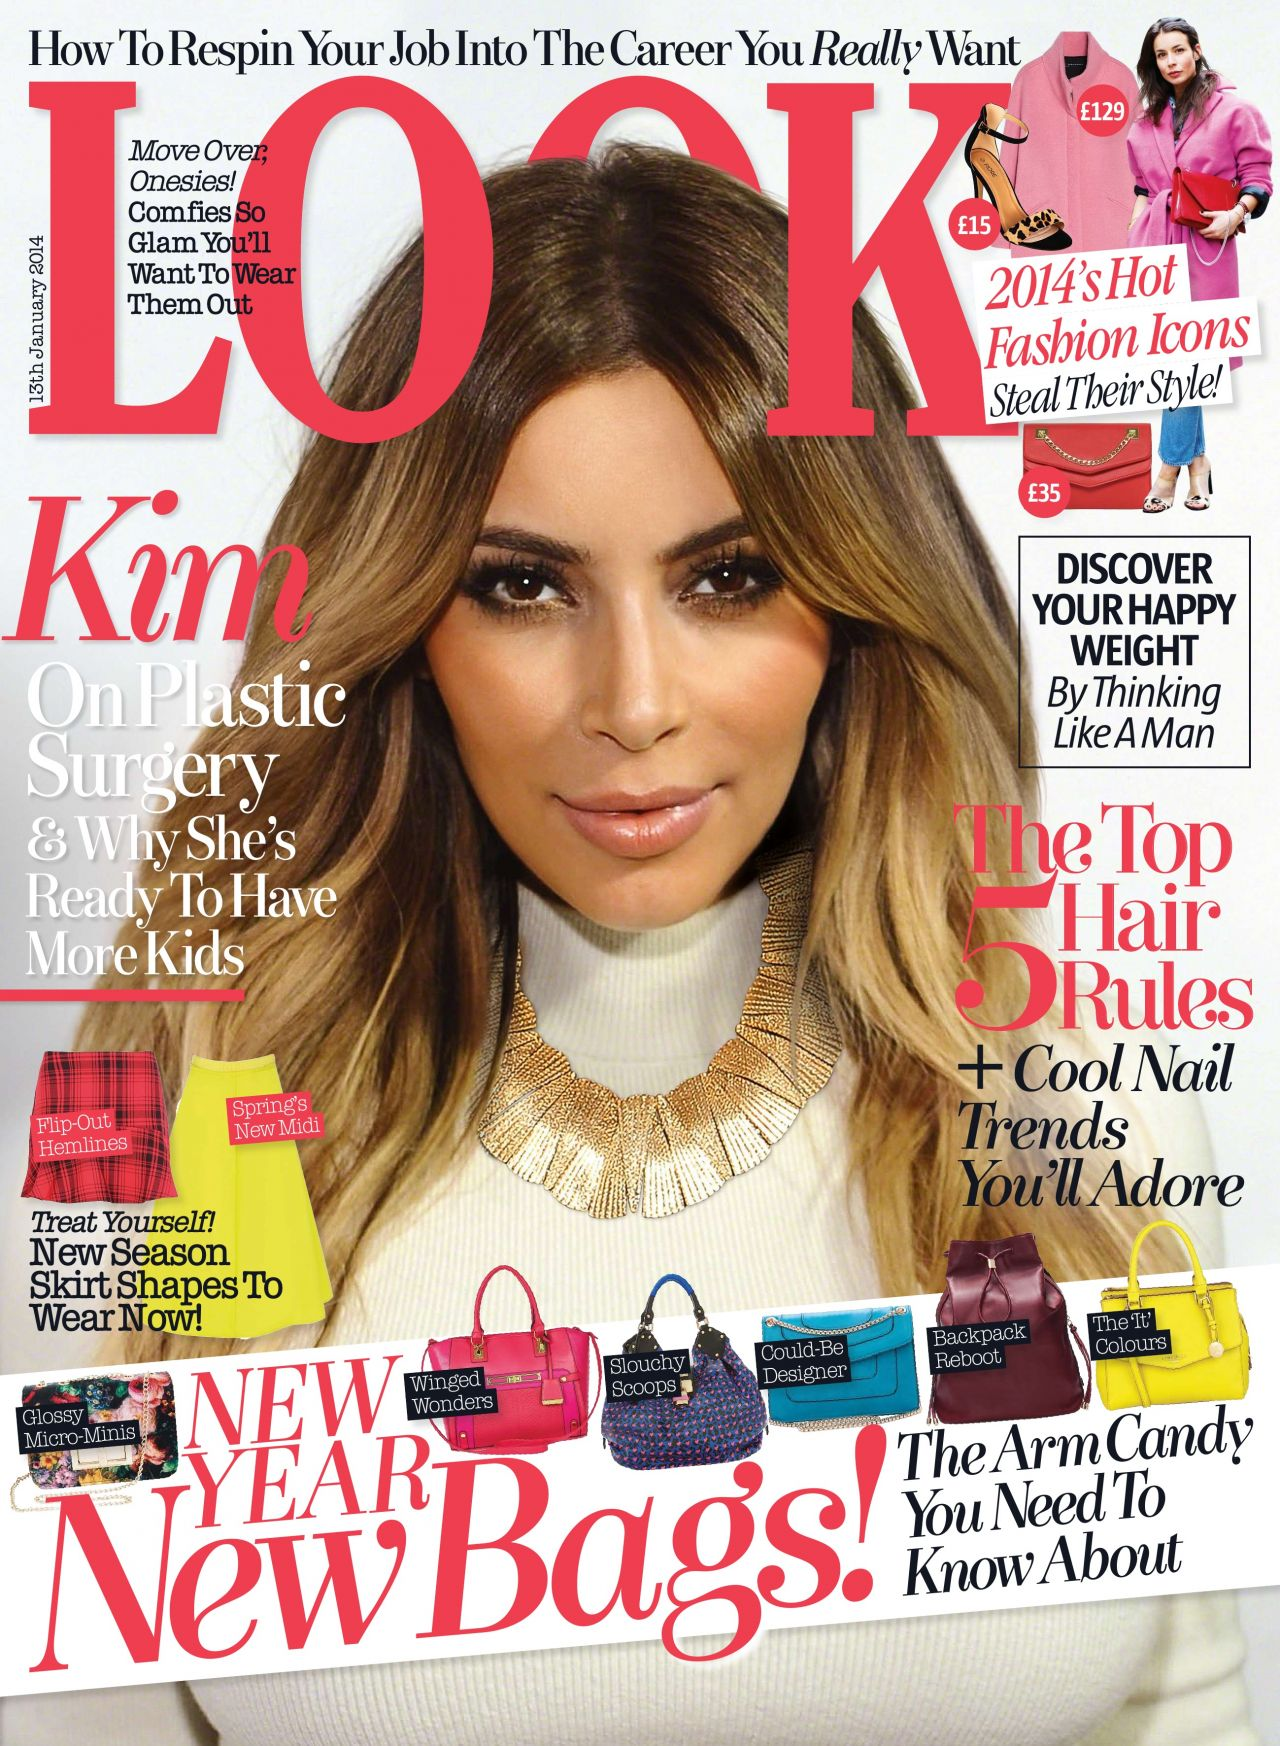 Kim Kardashian - LOOK Magazine - January 13, 2014 Cover